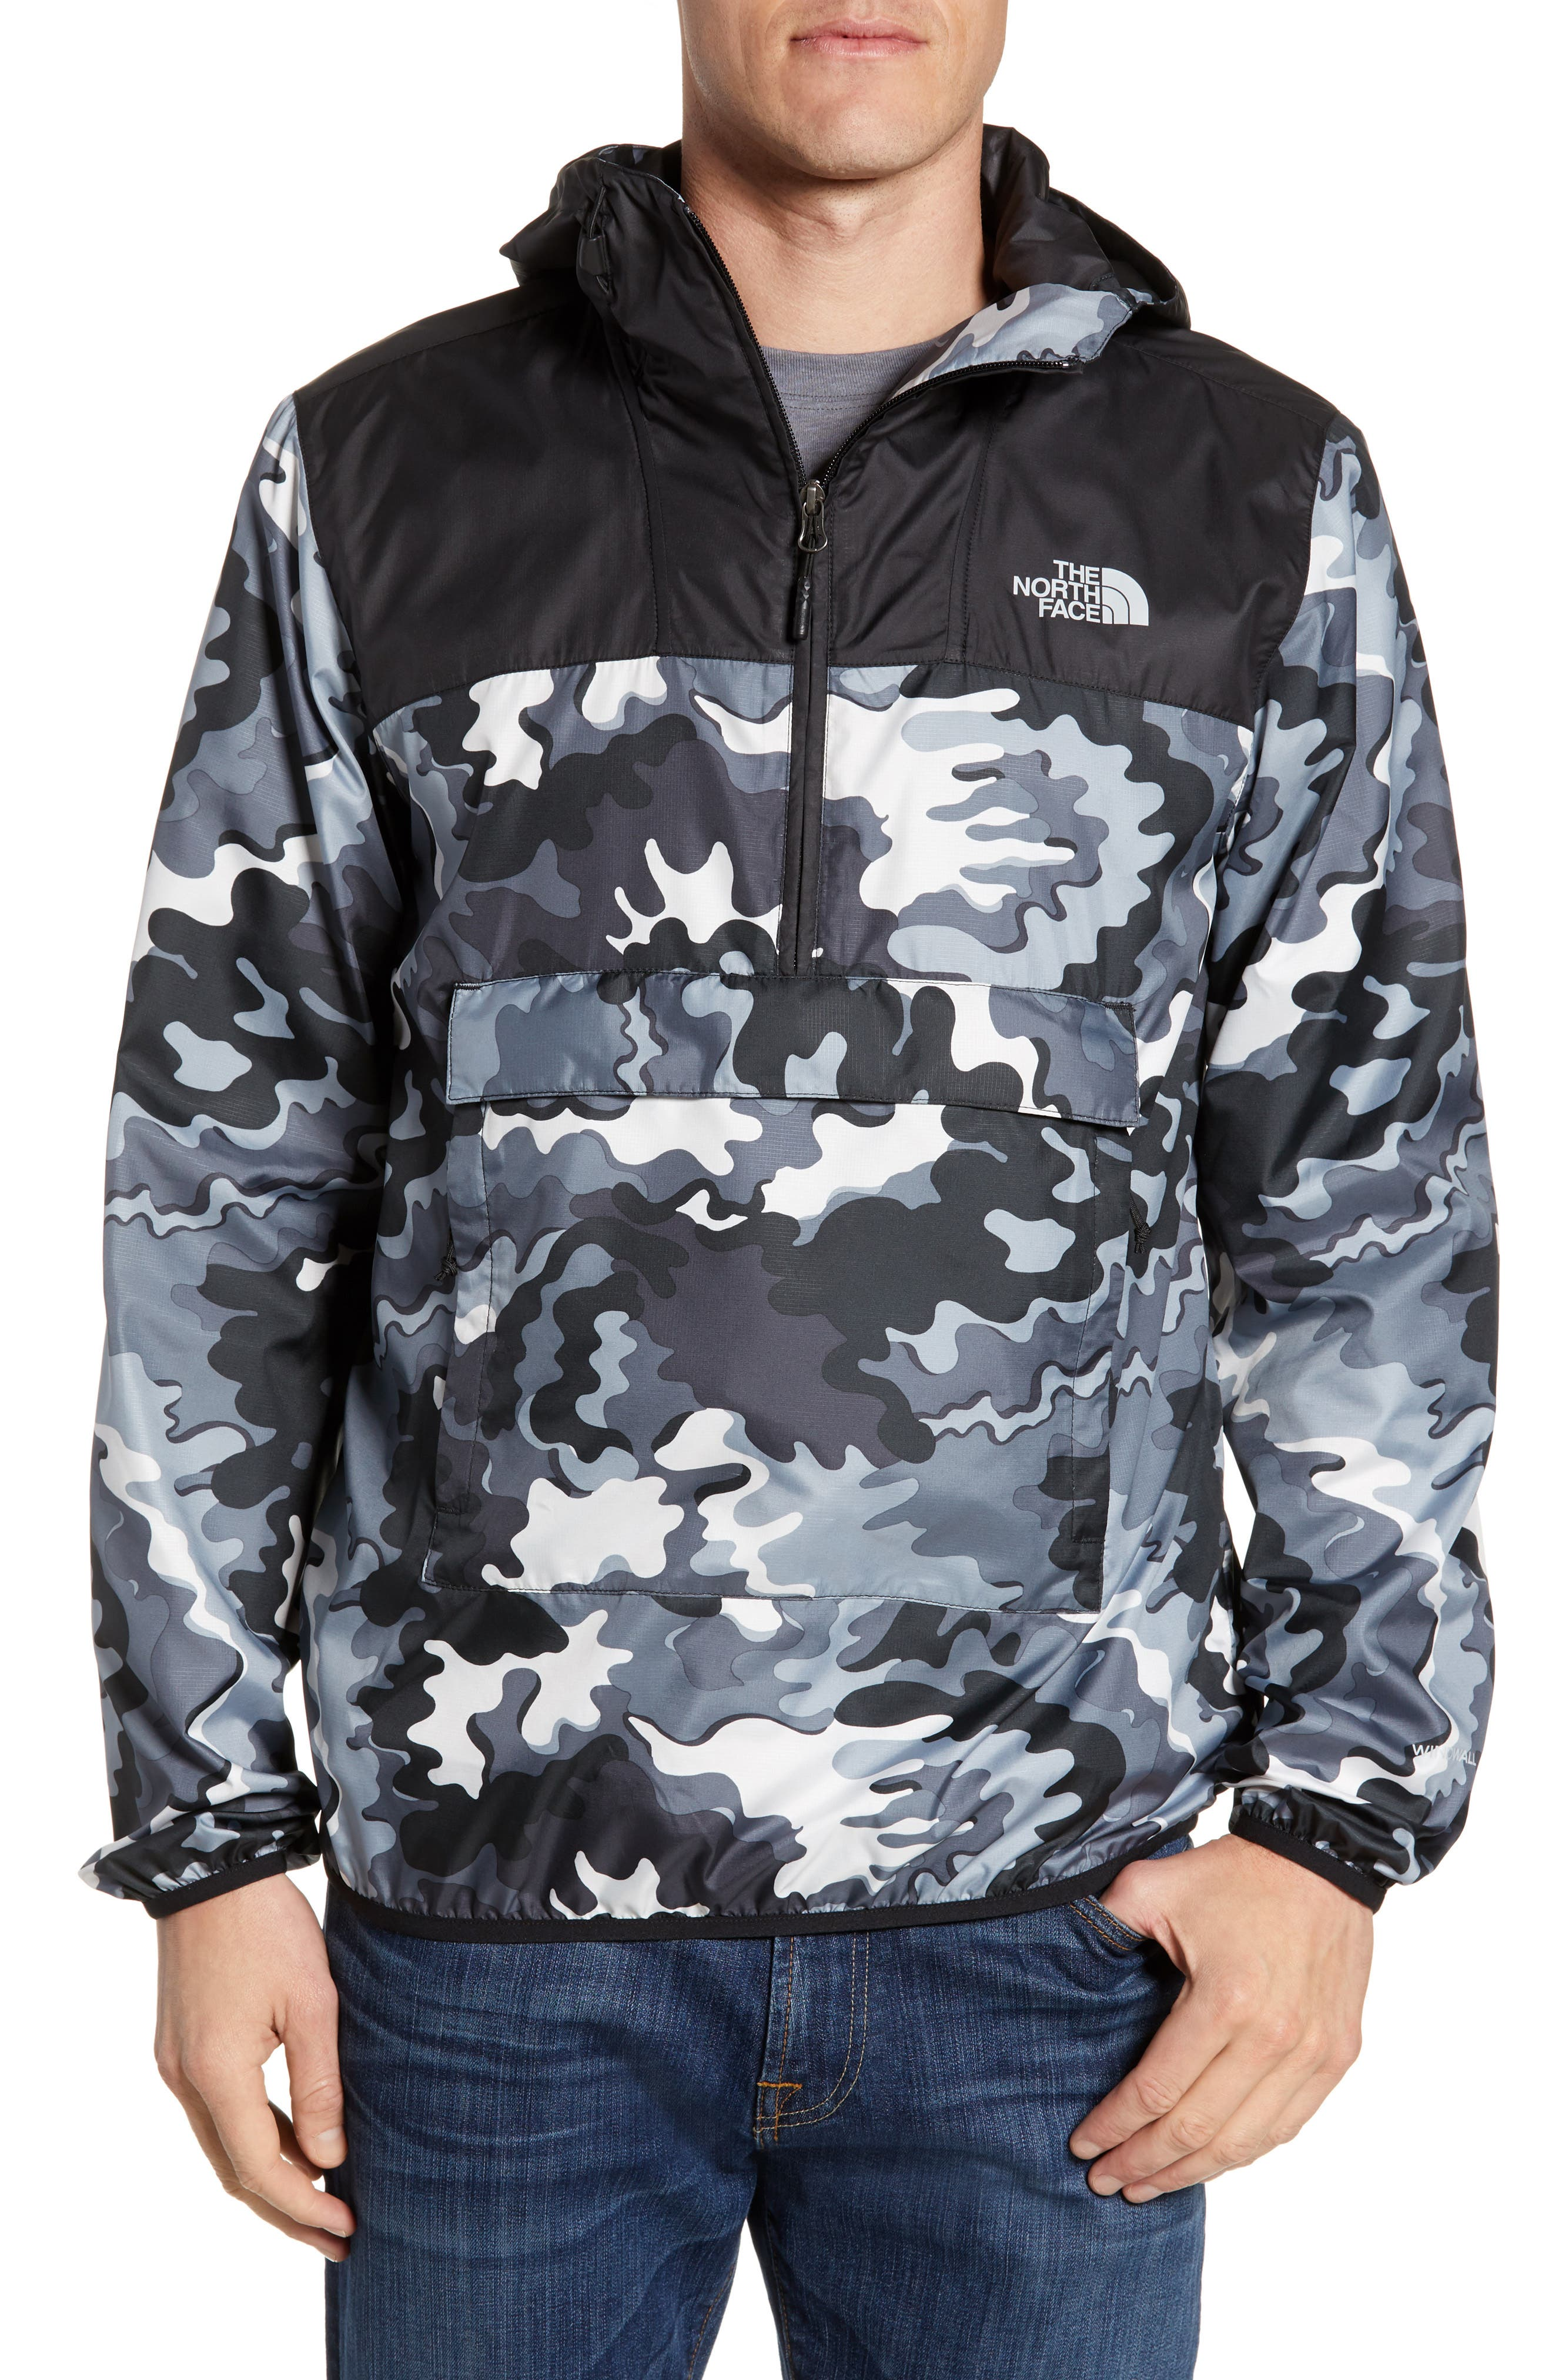 The North Face Fanorak Jacket, Black